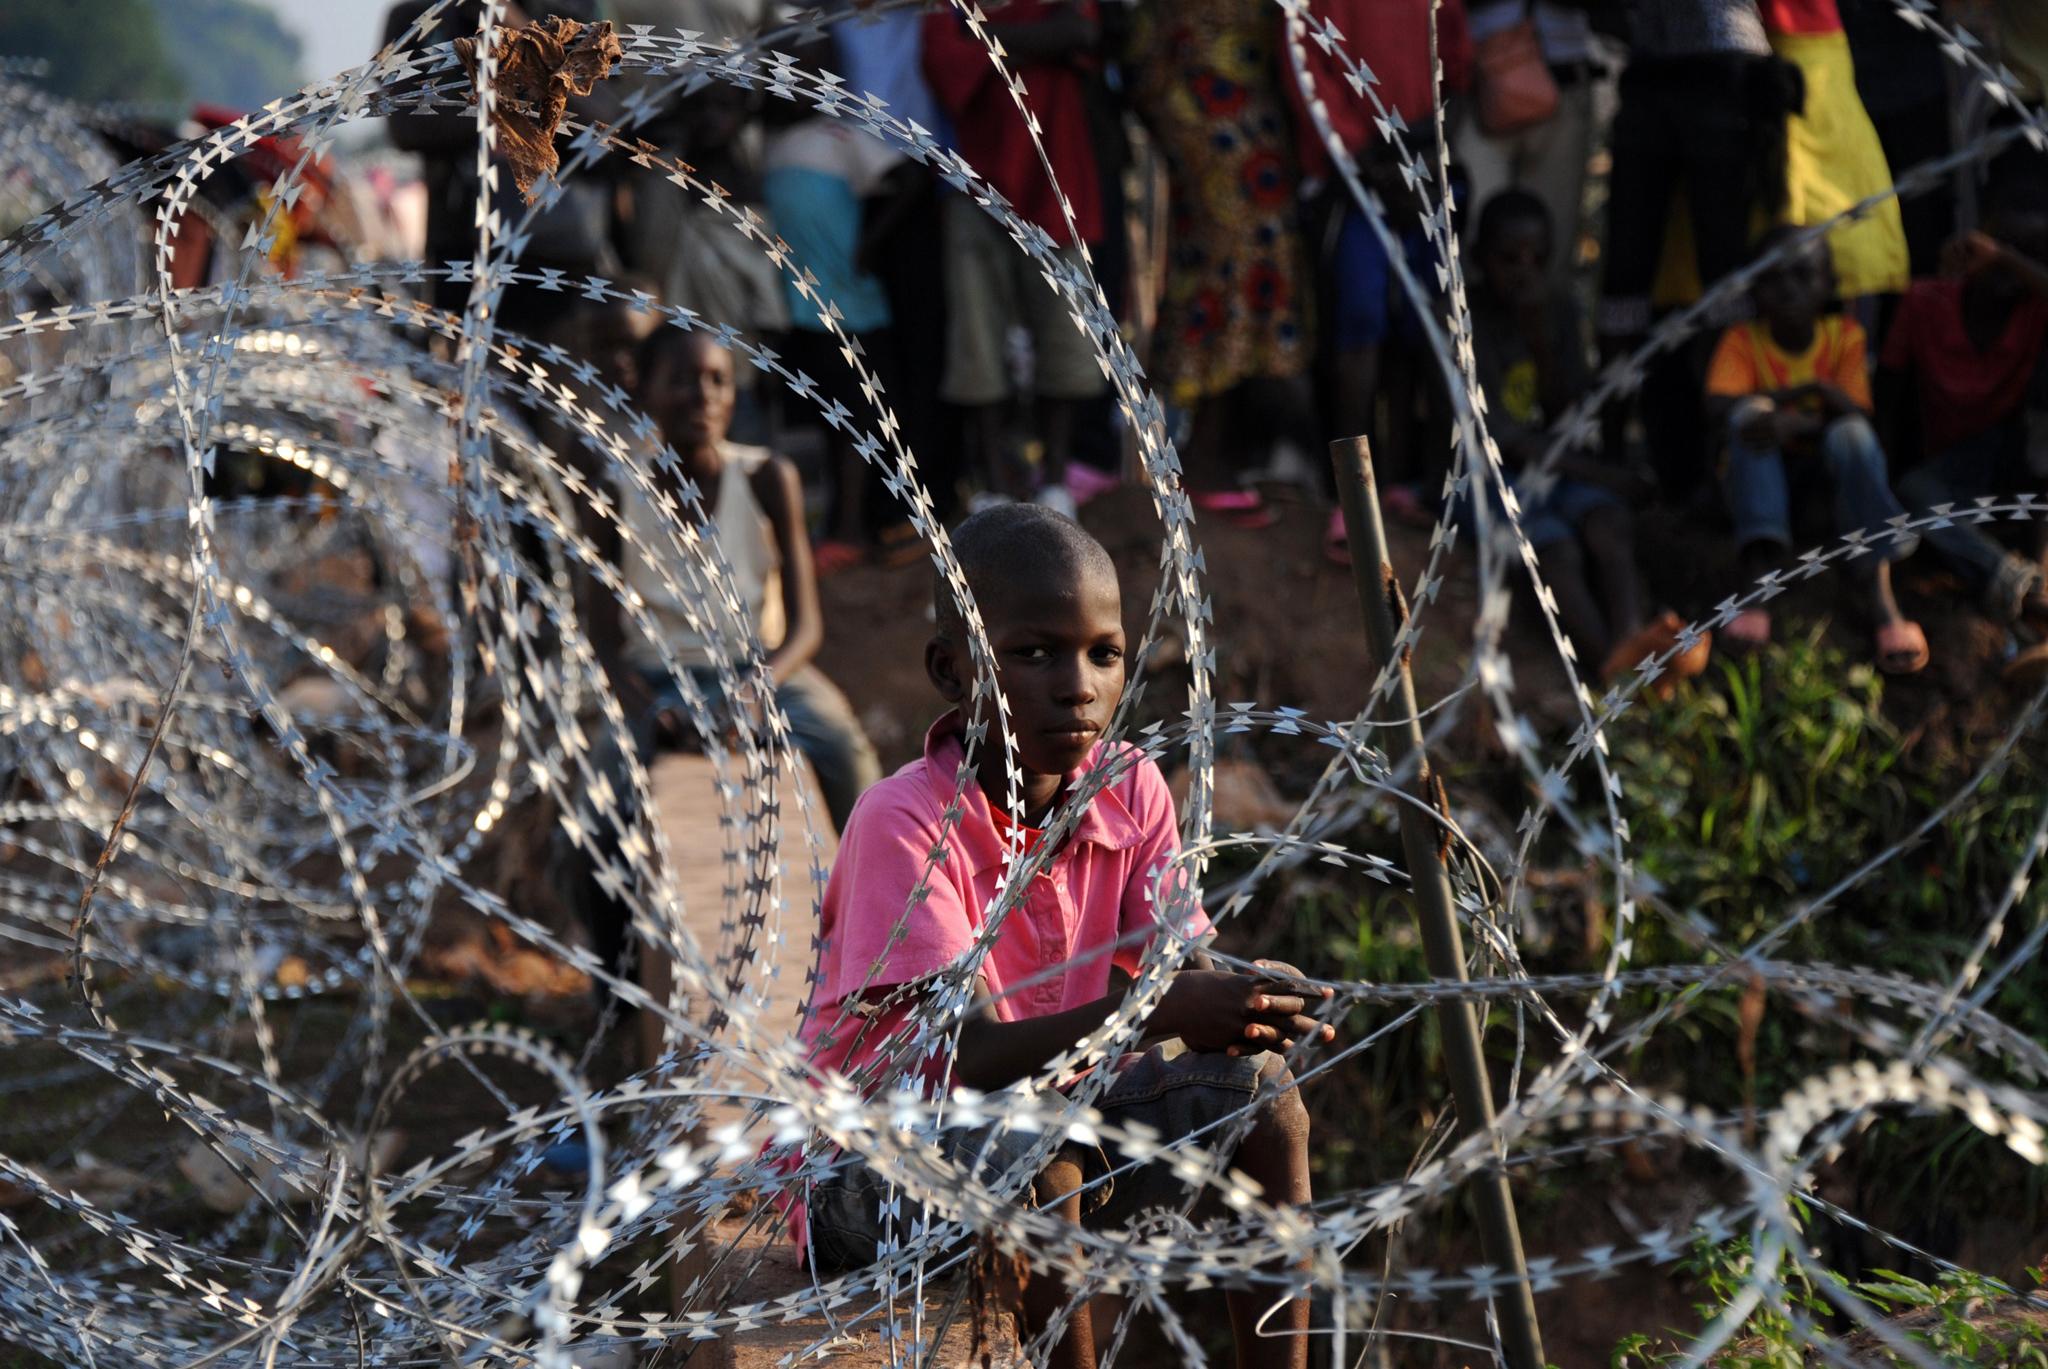 A child sits next to barbed wire as people stand in a refugee camp near the airport in Bangui, Central African Republic, after fleeing violence.